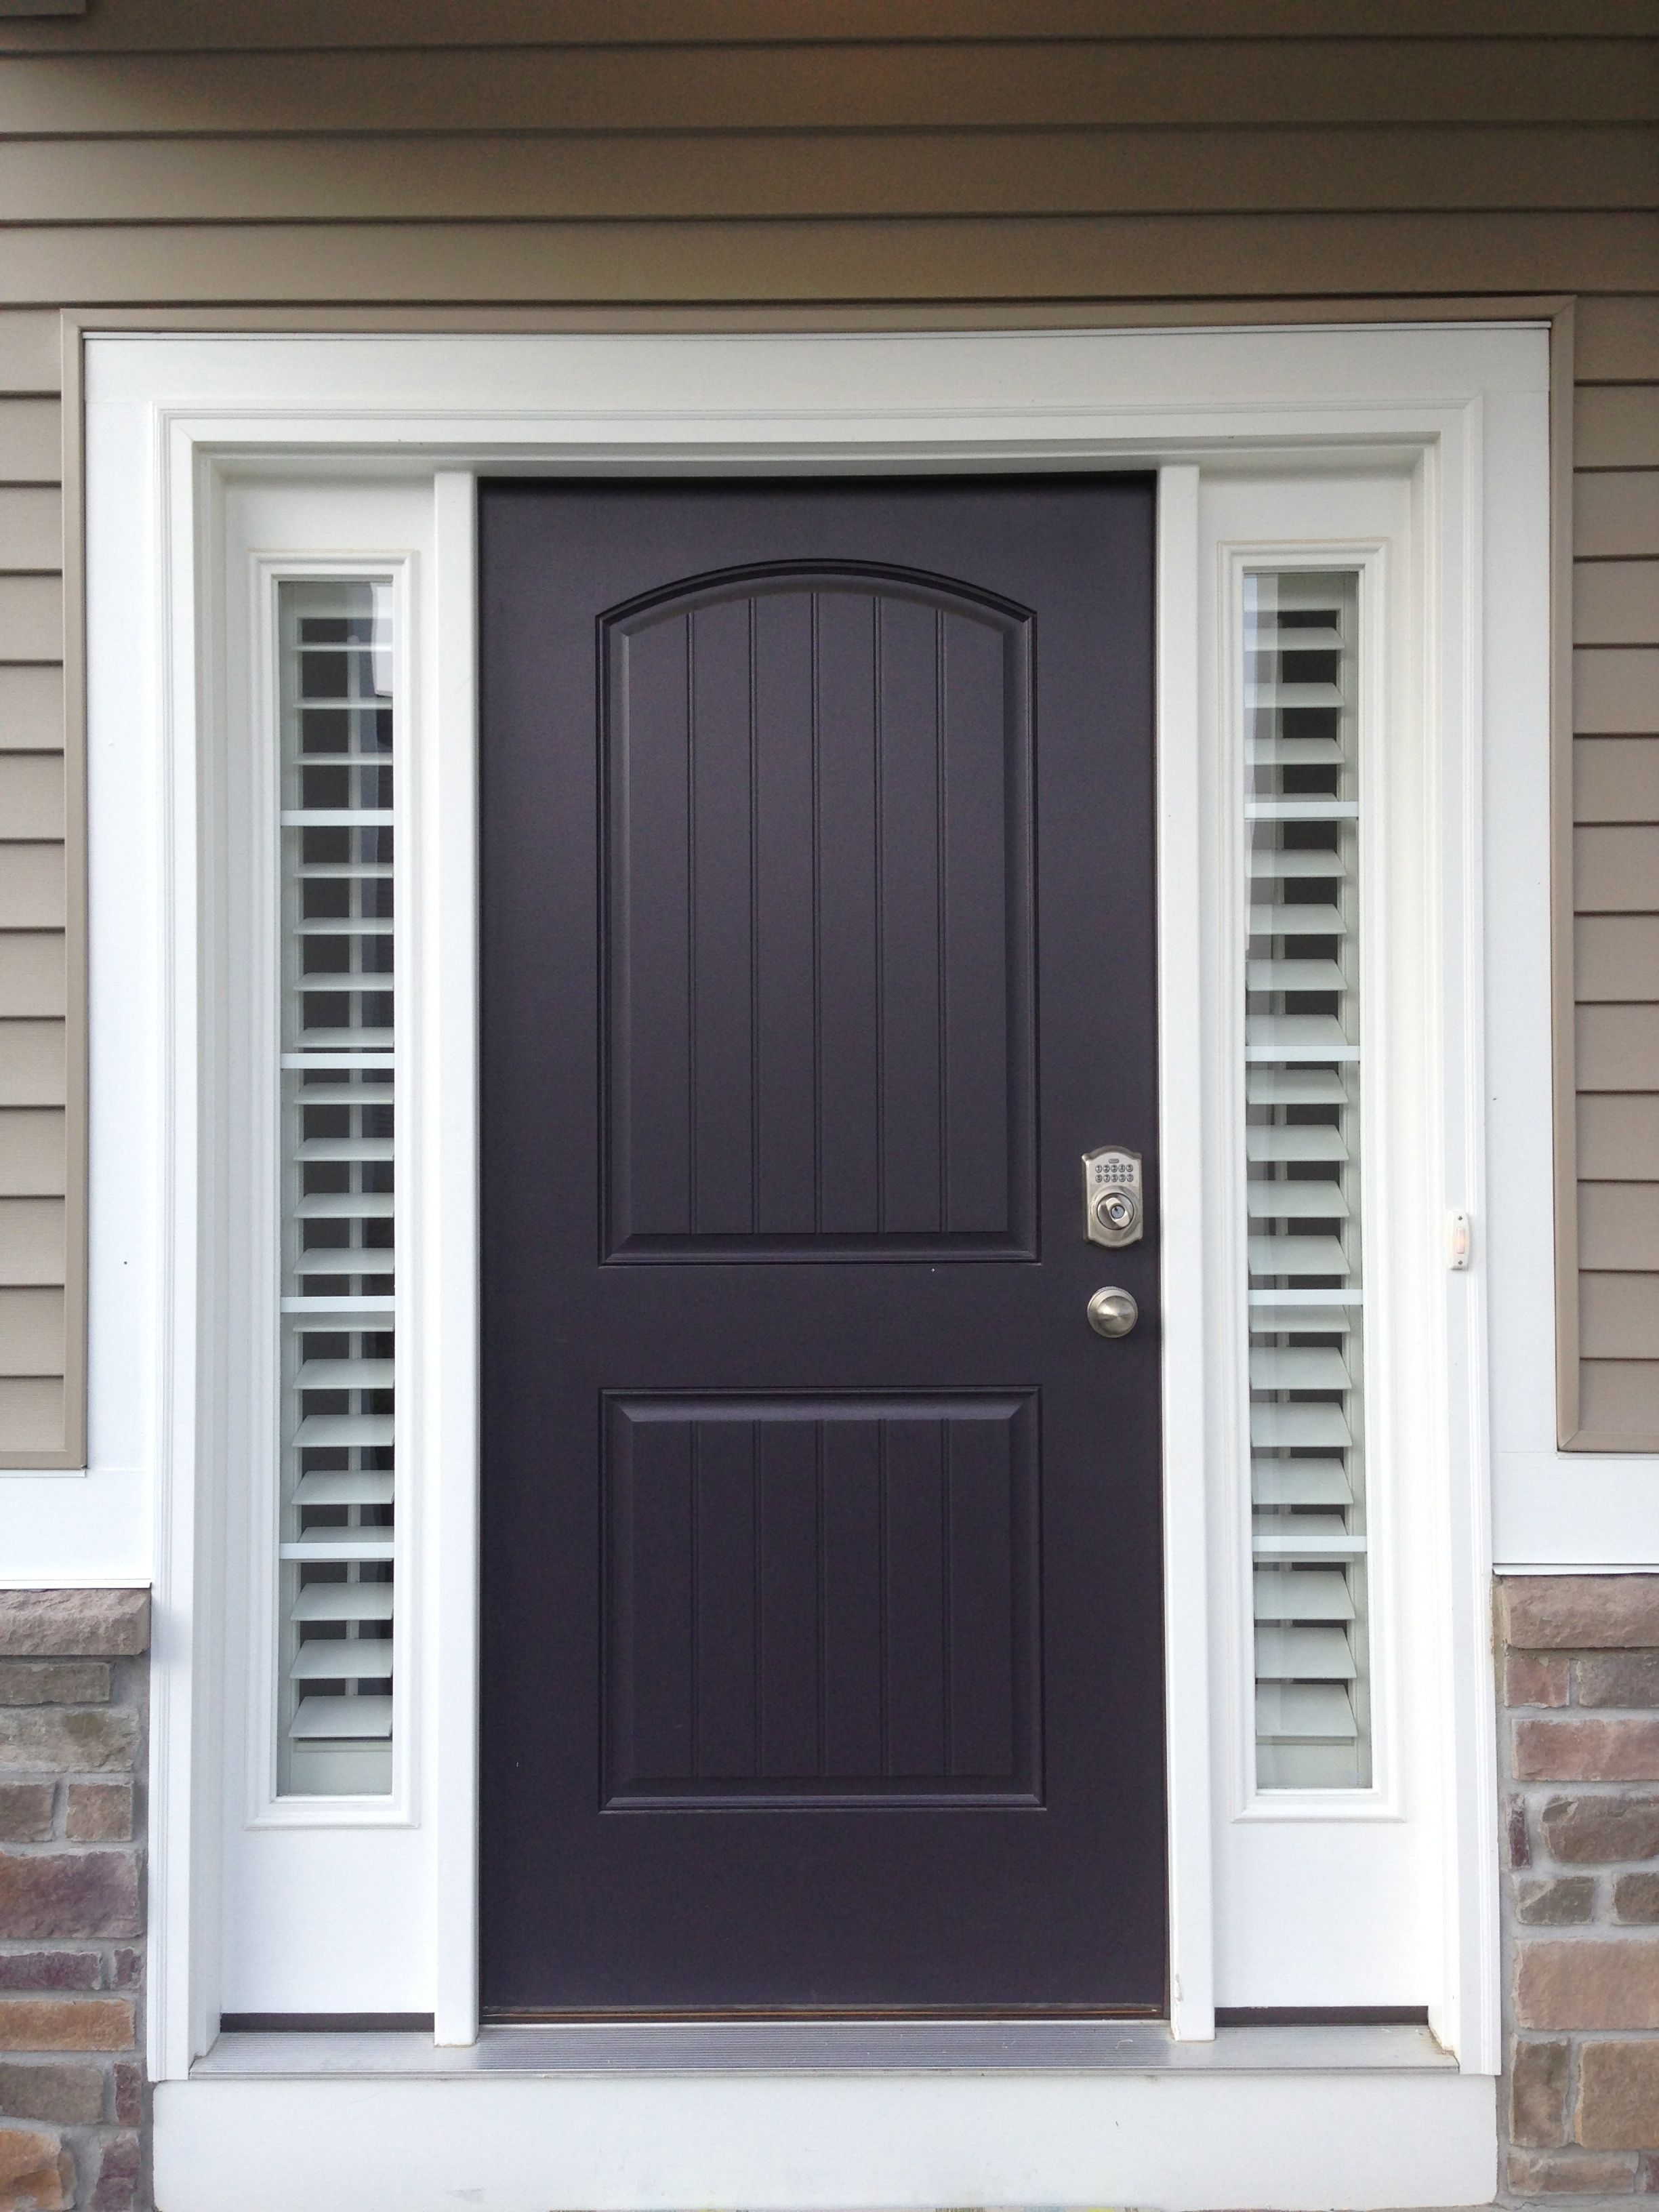 Entry door sidelight window shutters sunburst shutters for Entrance door with window